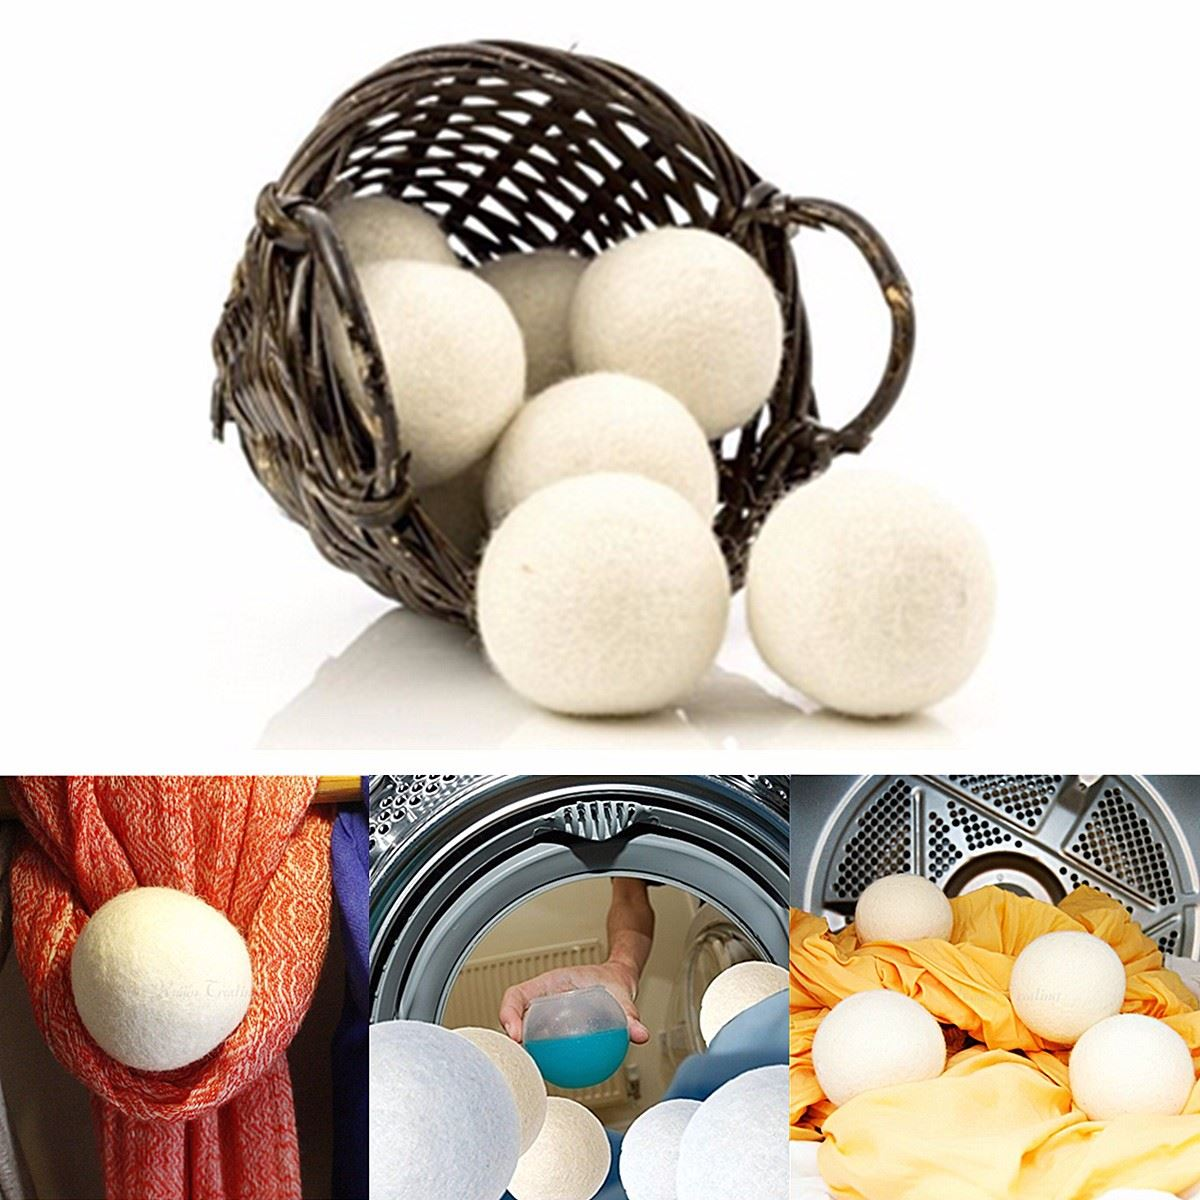 Wool-Dryer Ball Softener Laundry-Fabric Organic Reusable Premium Natural 6pcs/Pack